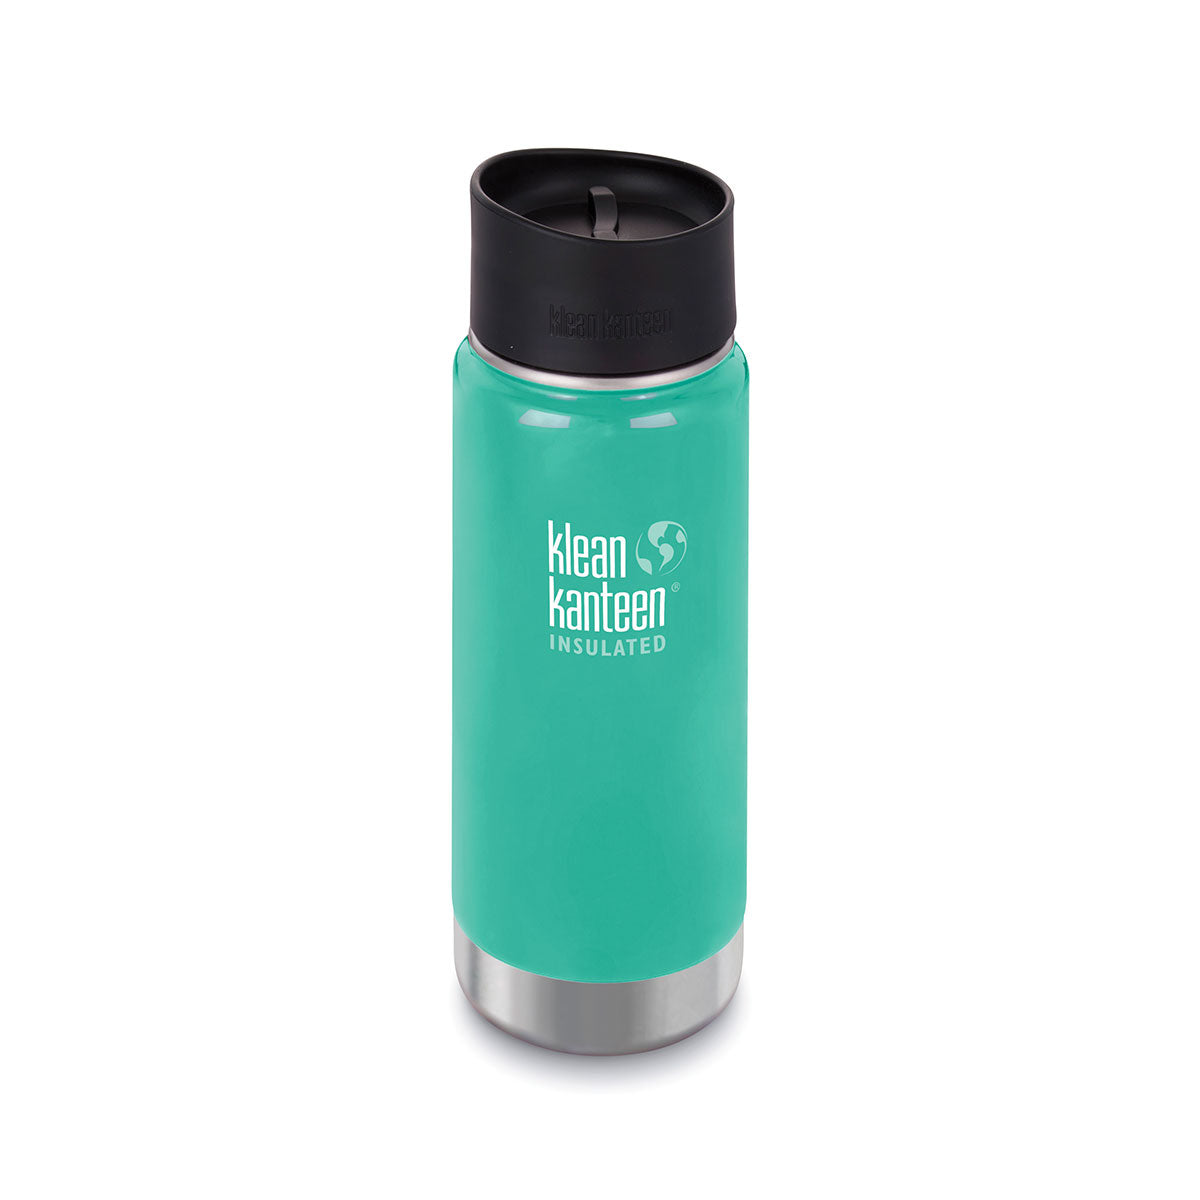 Klean Kanteen Insulated Classic Wide 16oz (473ml)